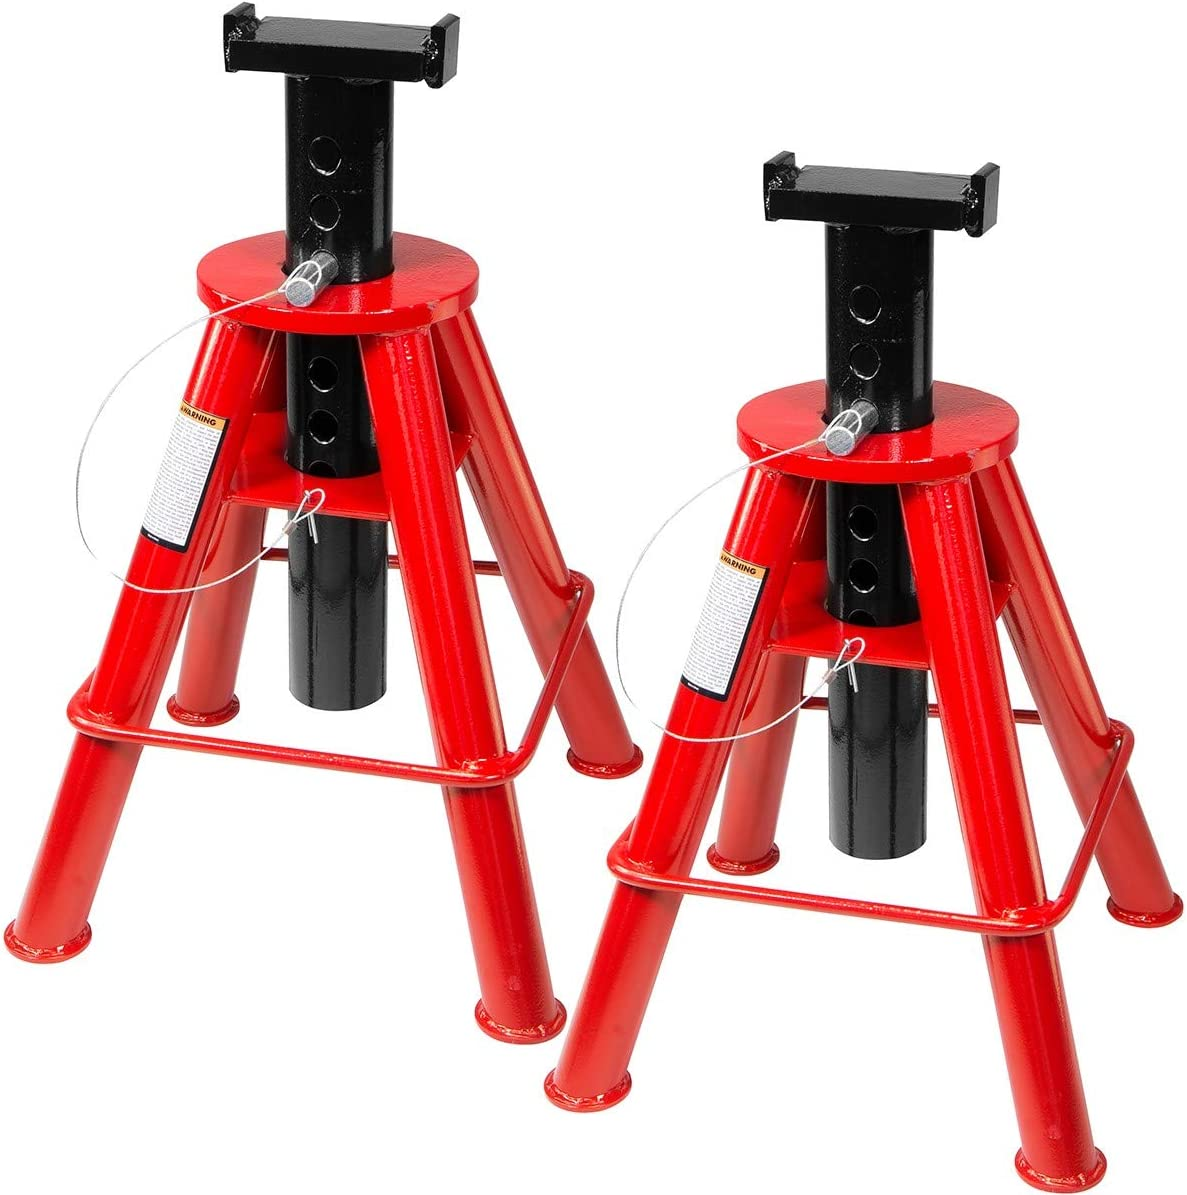 Stark 22-Ton Capacity Jack Stands Pin Style Lock Adjustable Height Set of 2 Pair